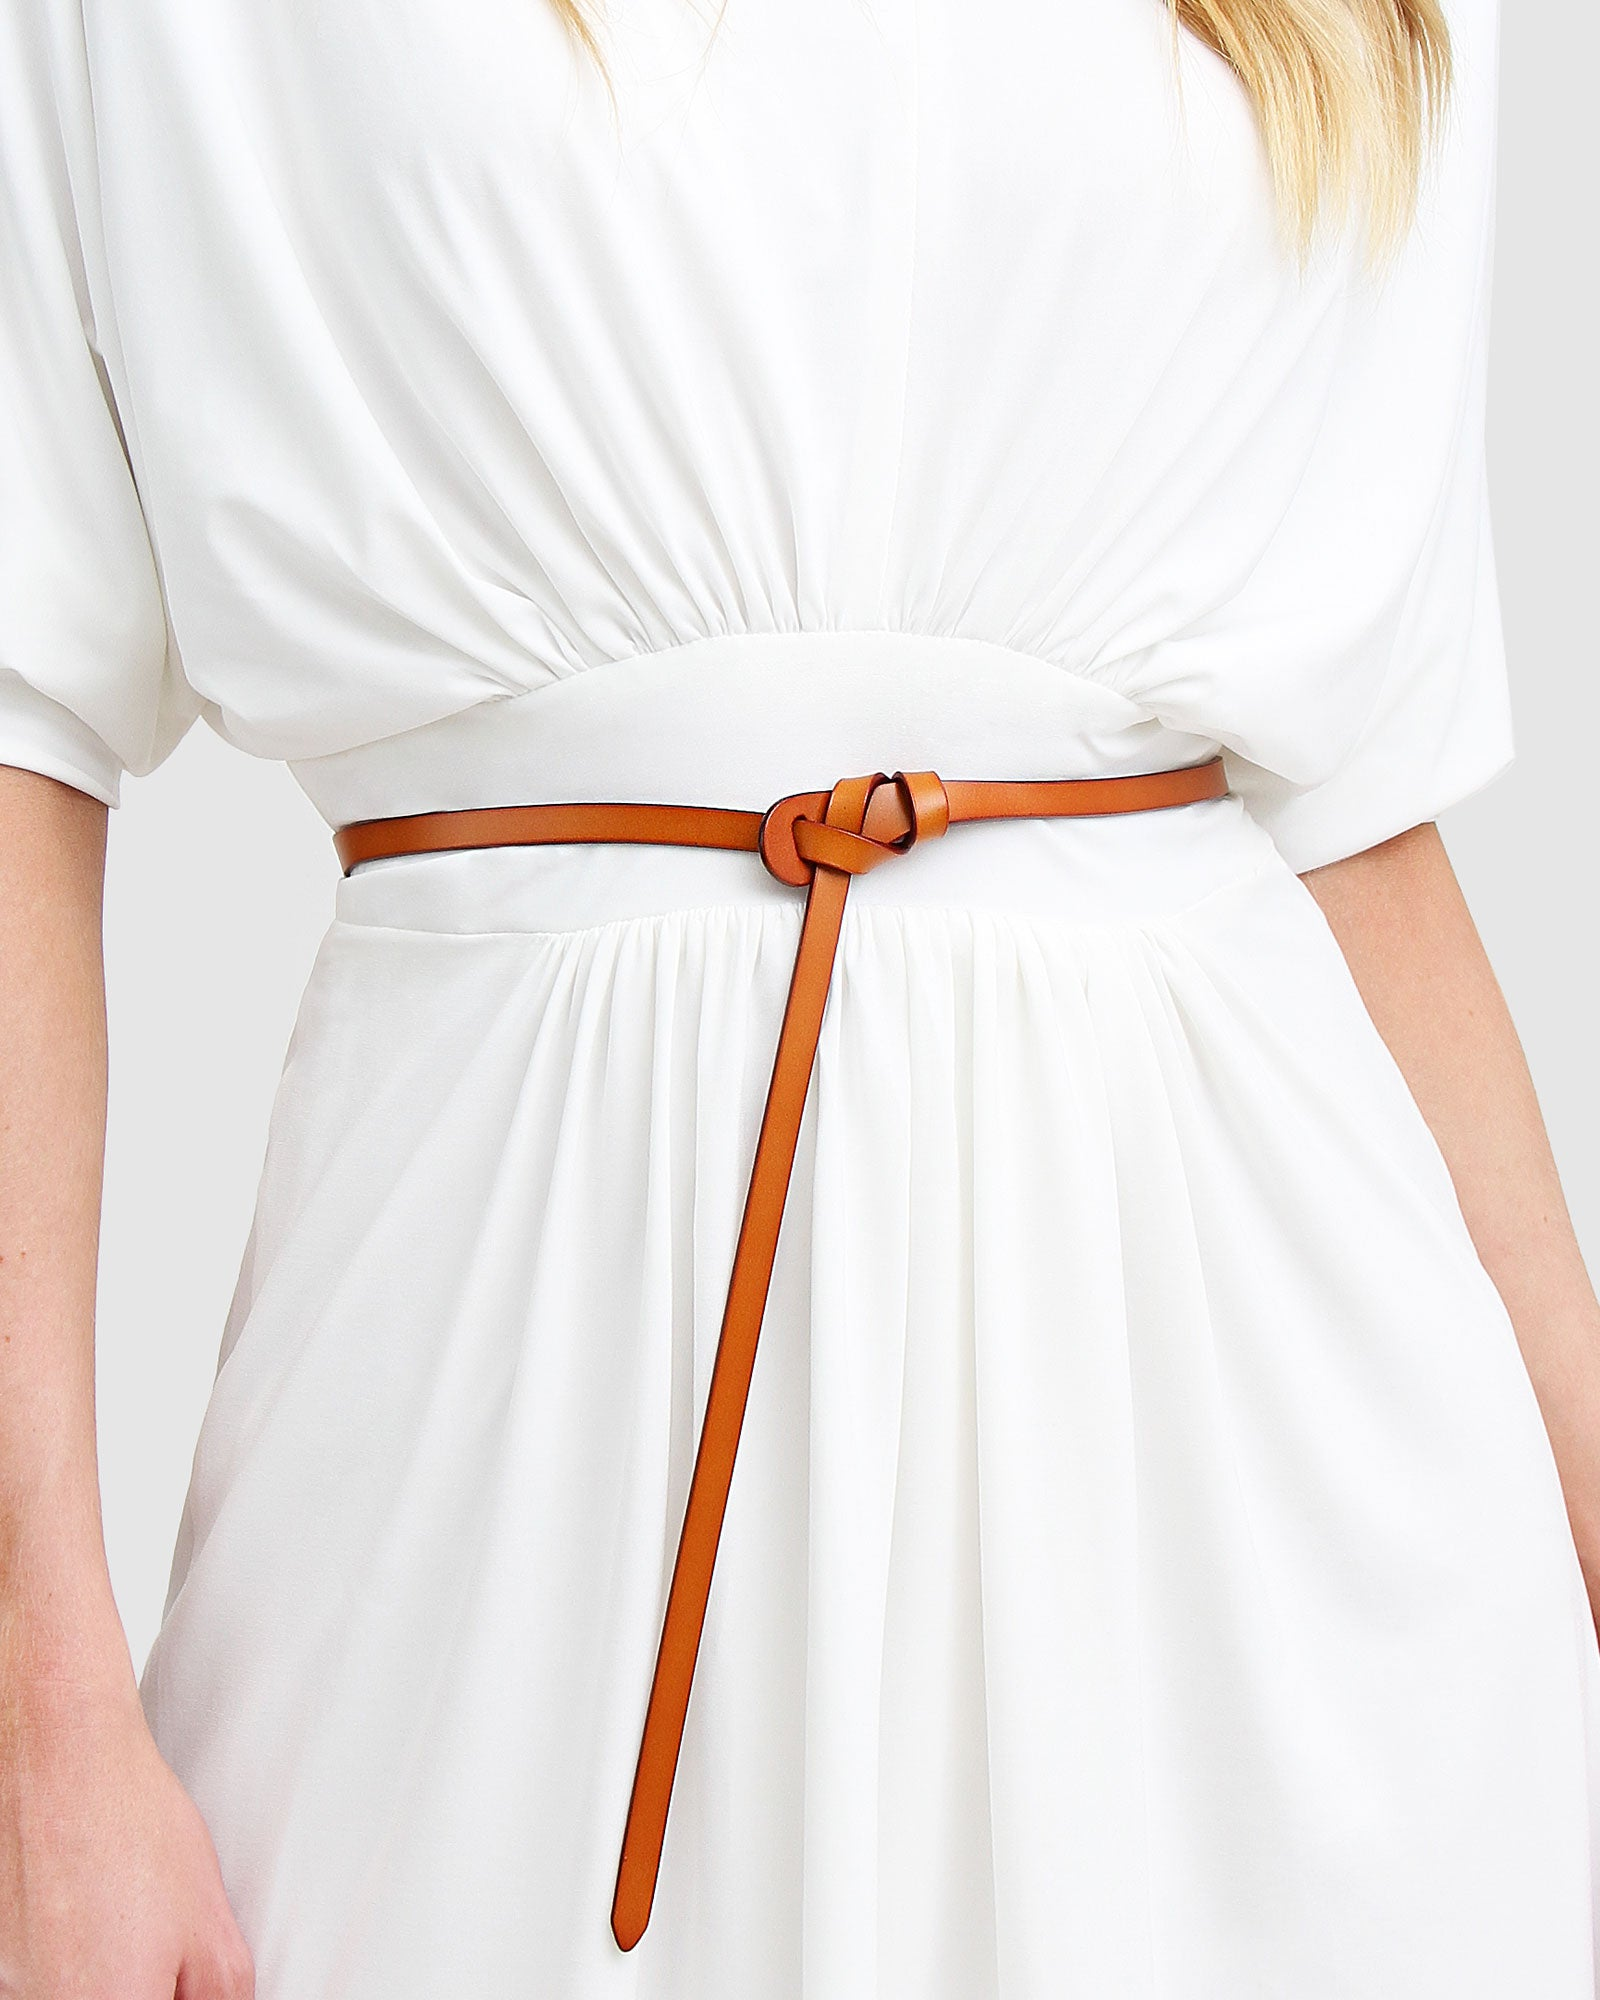 Tie The Knot Leather Belt - Brown